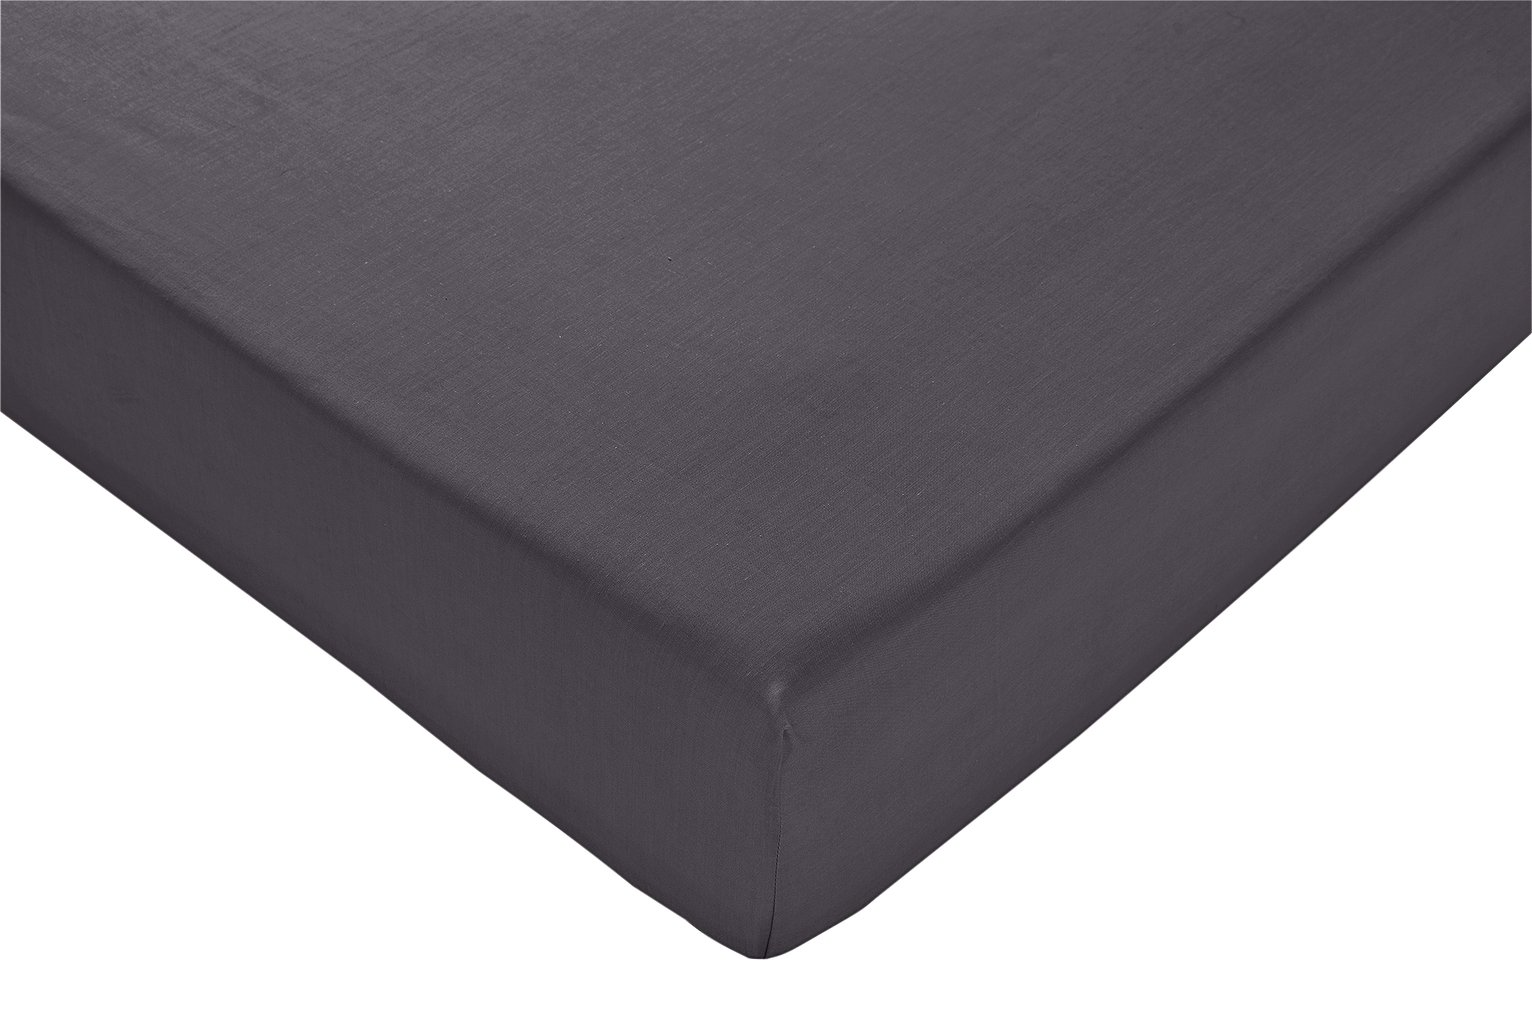 Argos Home Charcoal Cotton Rich Fitted Sheet - Double